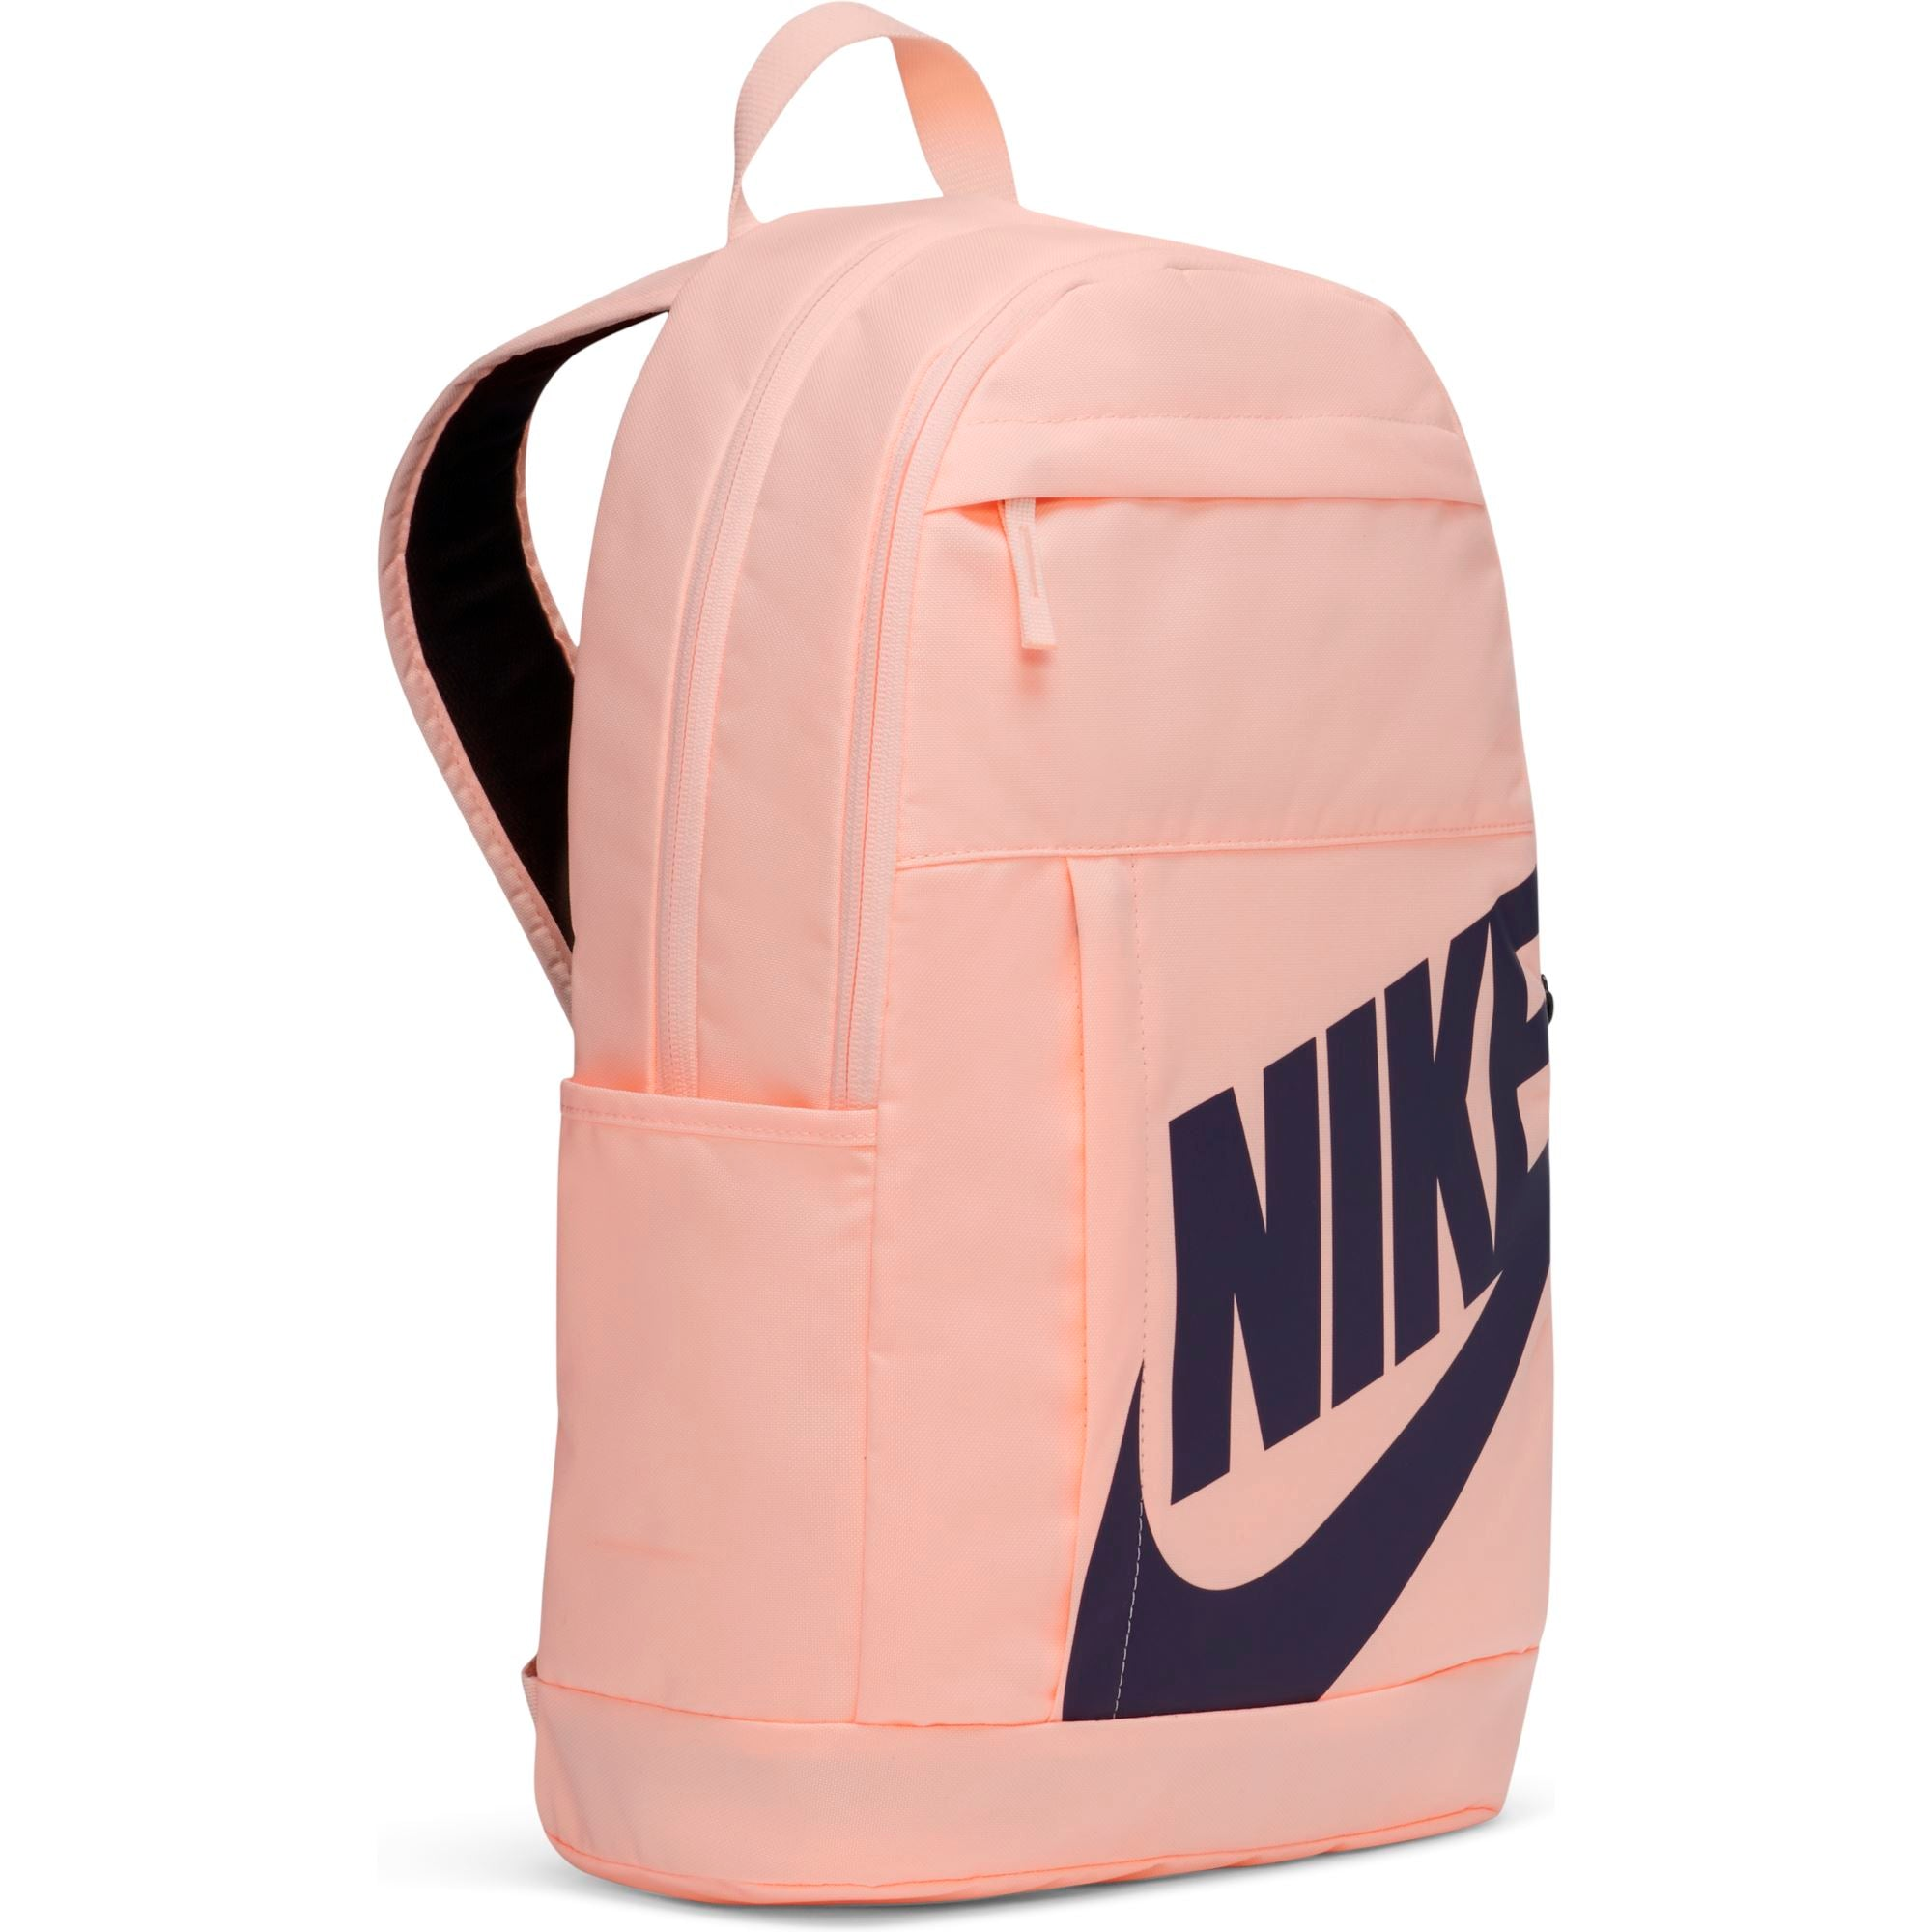 Nike Sportswear Elemental 2.0 Backpack - Crimson Tint/Dark Raisin SP-Accessories-Bags Nike